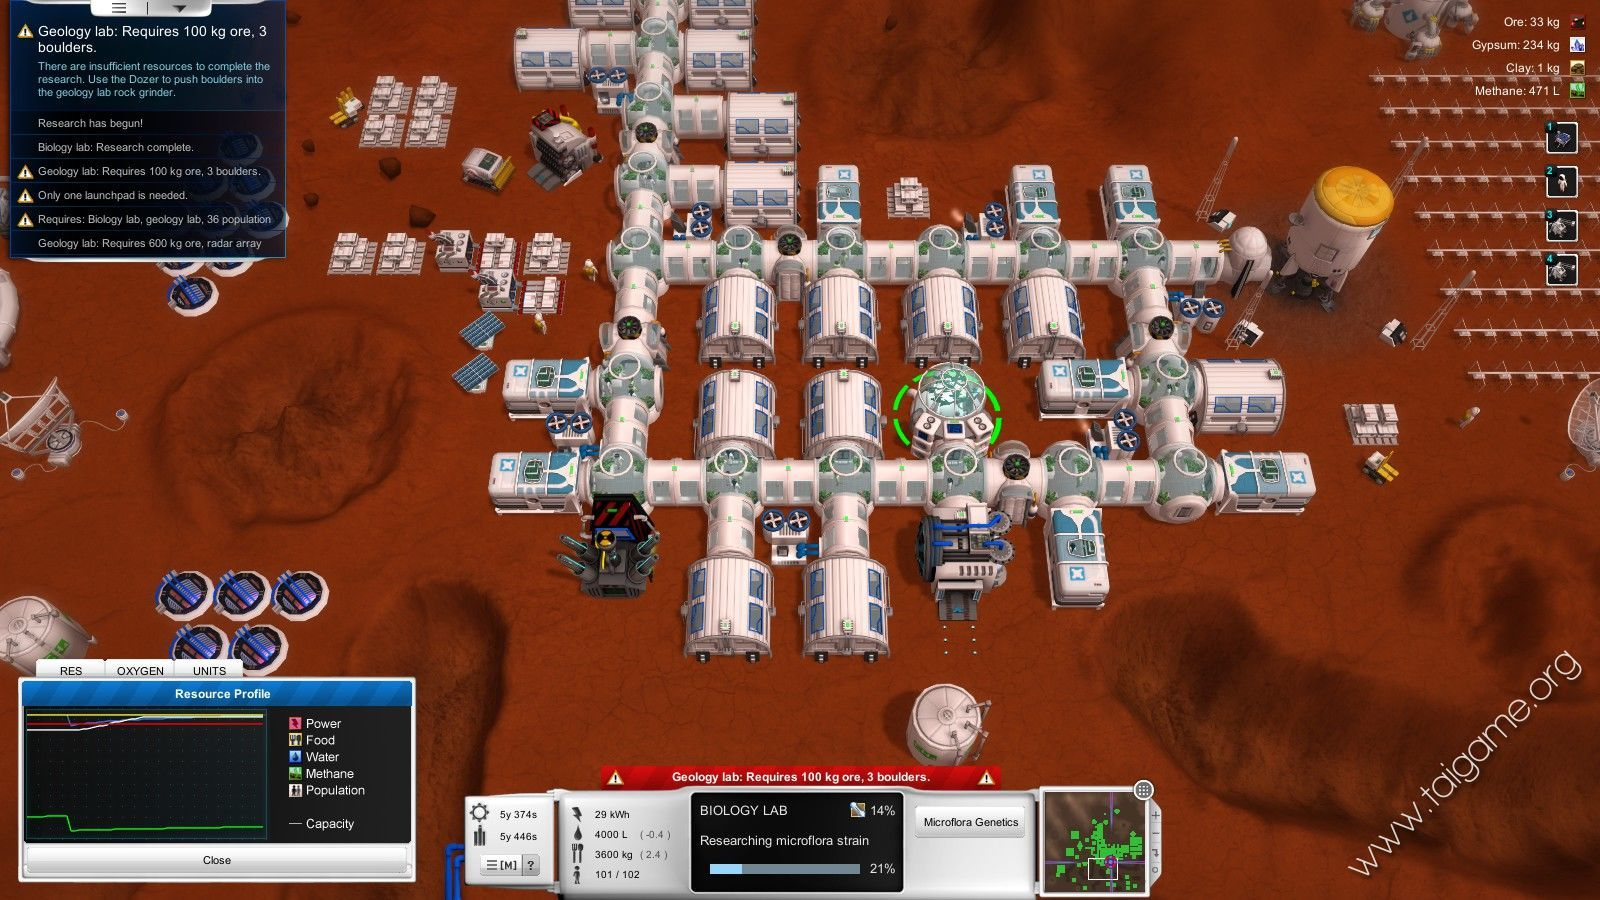 mars rover game tips - photo #30